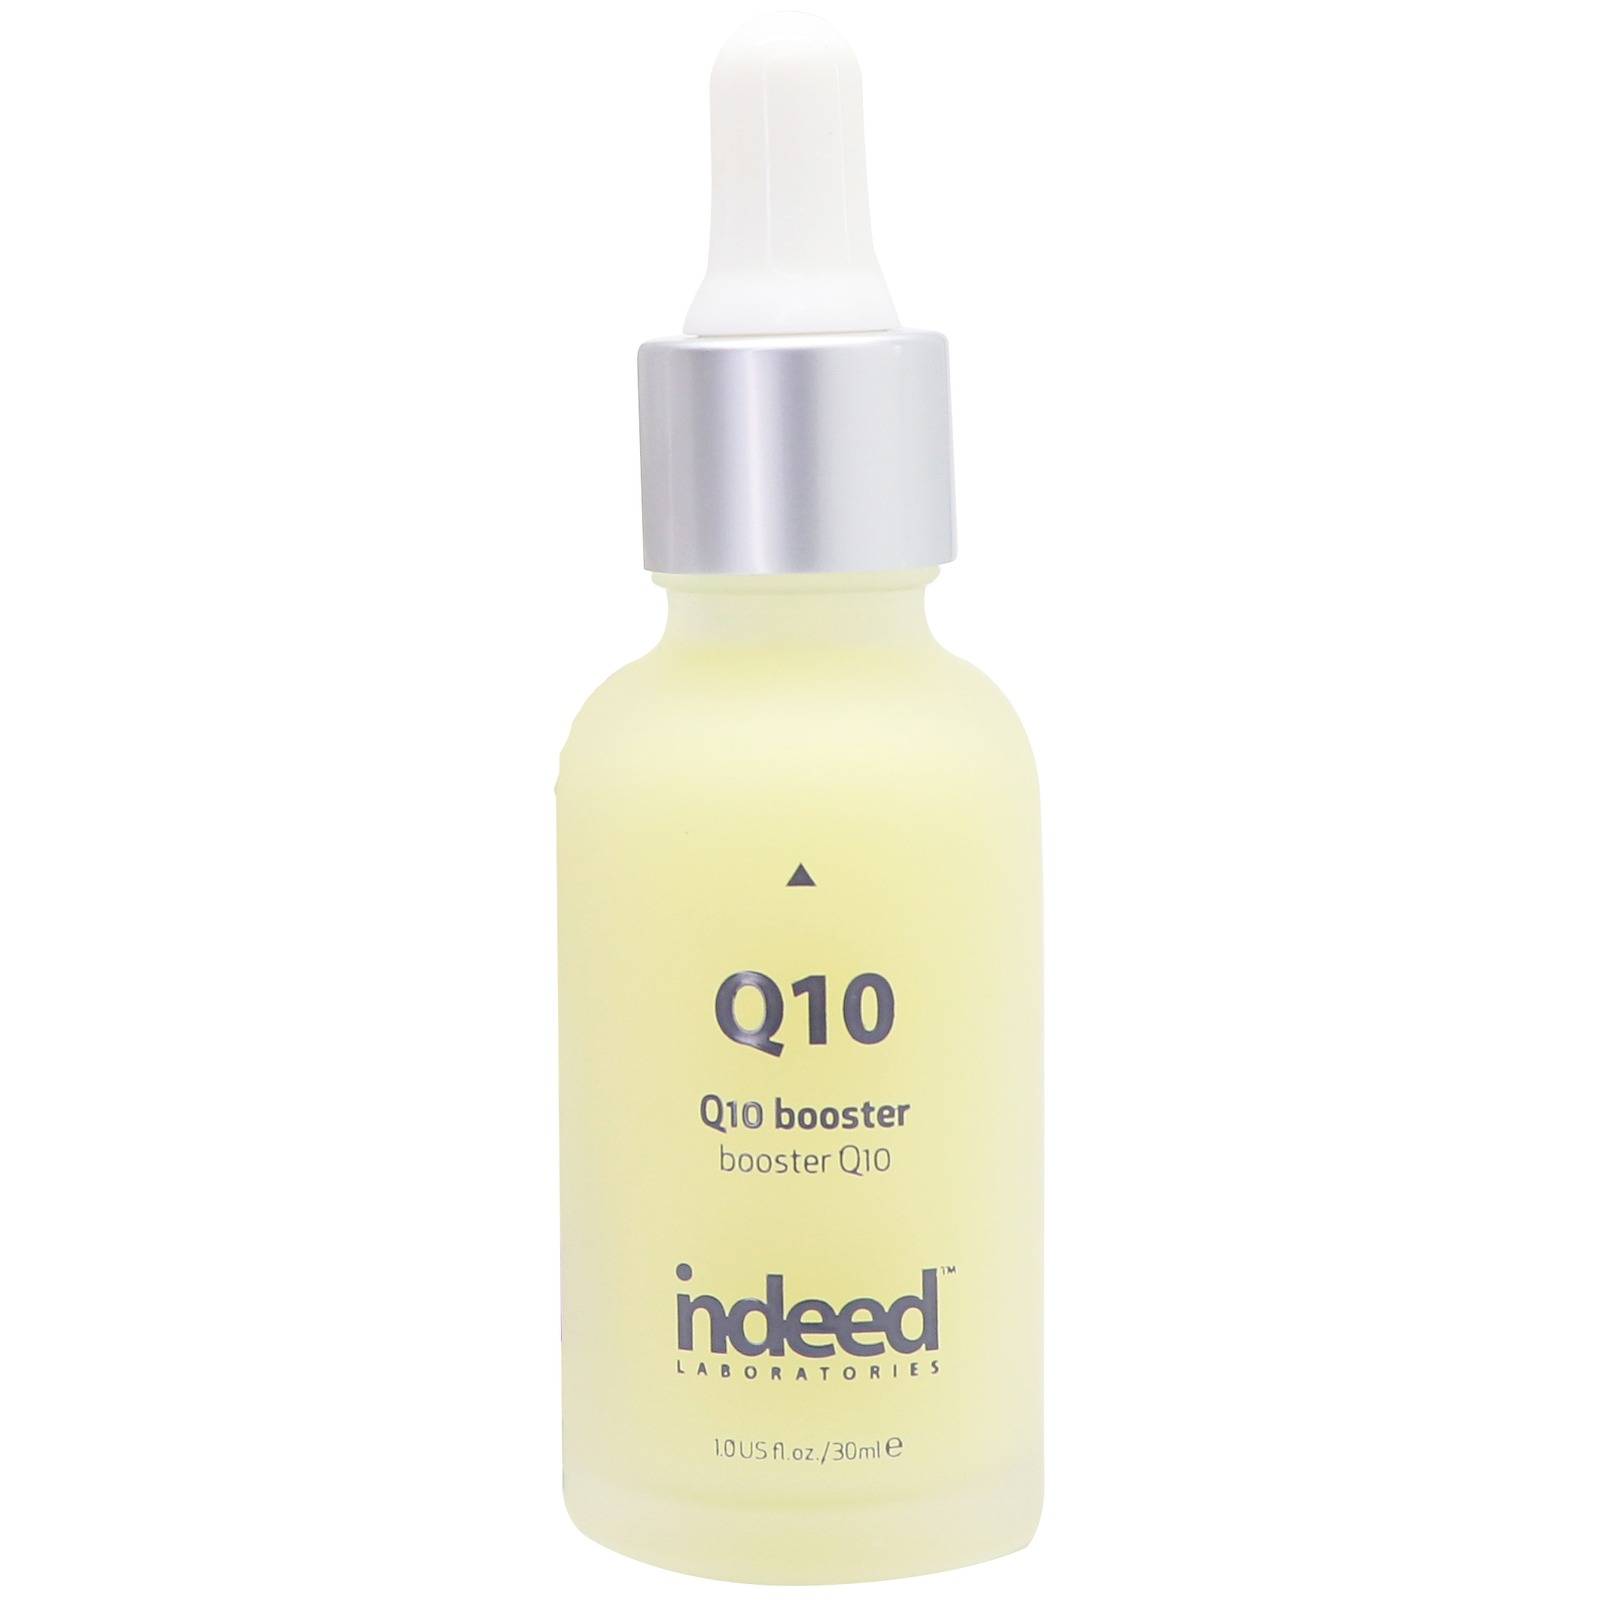 indeed laboratories Boosters Q10 Booster 30ml